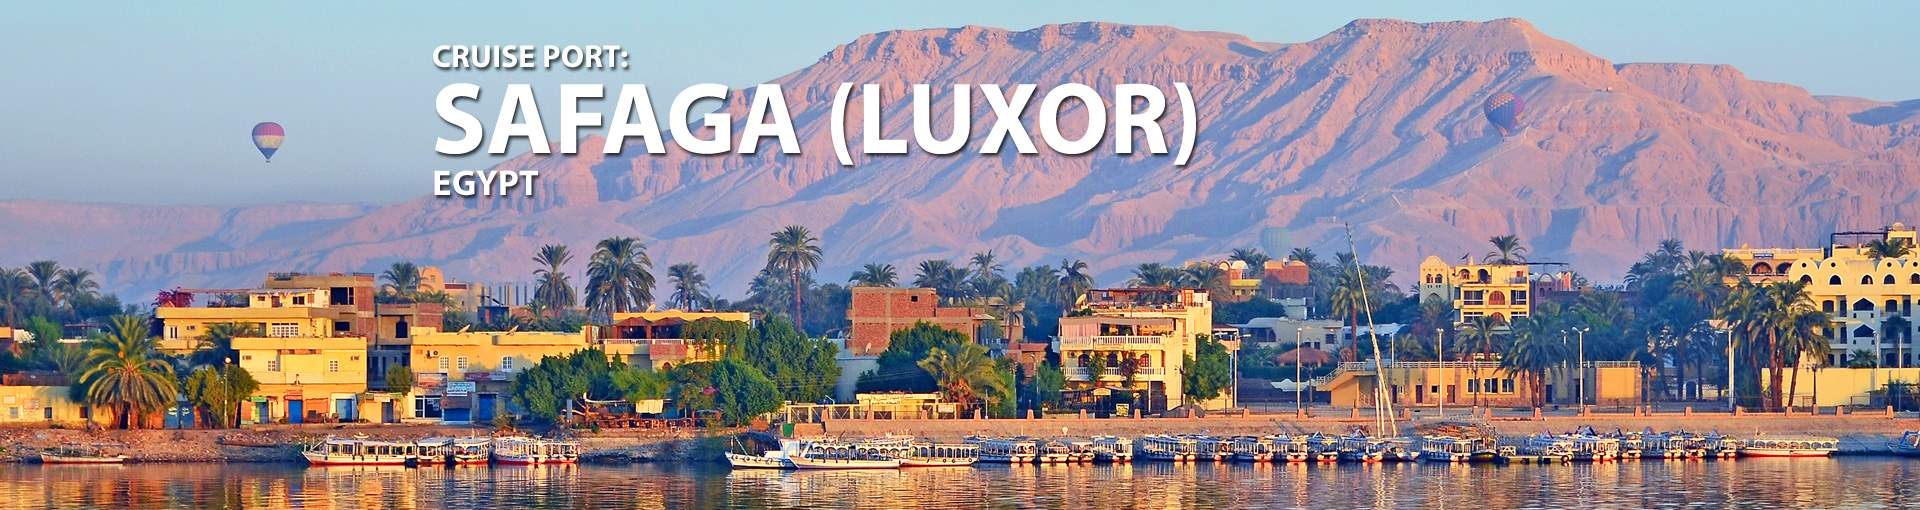 Cruises to Safaga (Luxor Karnak), Egypt